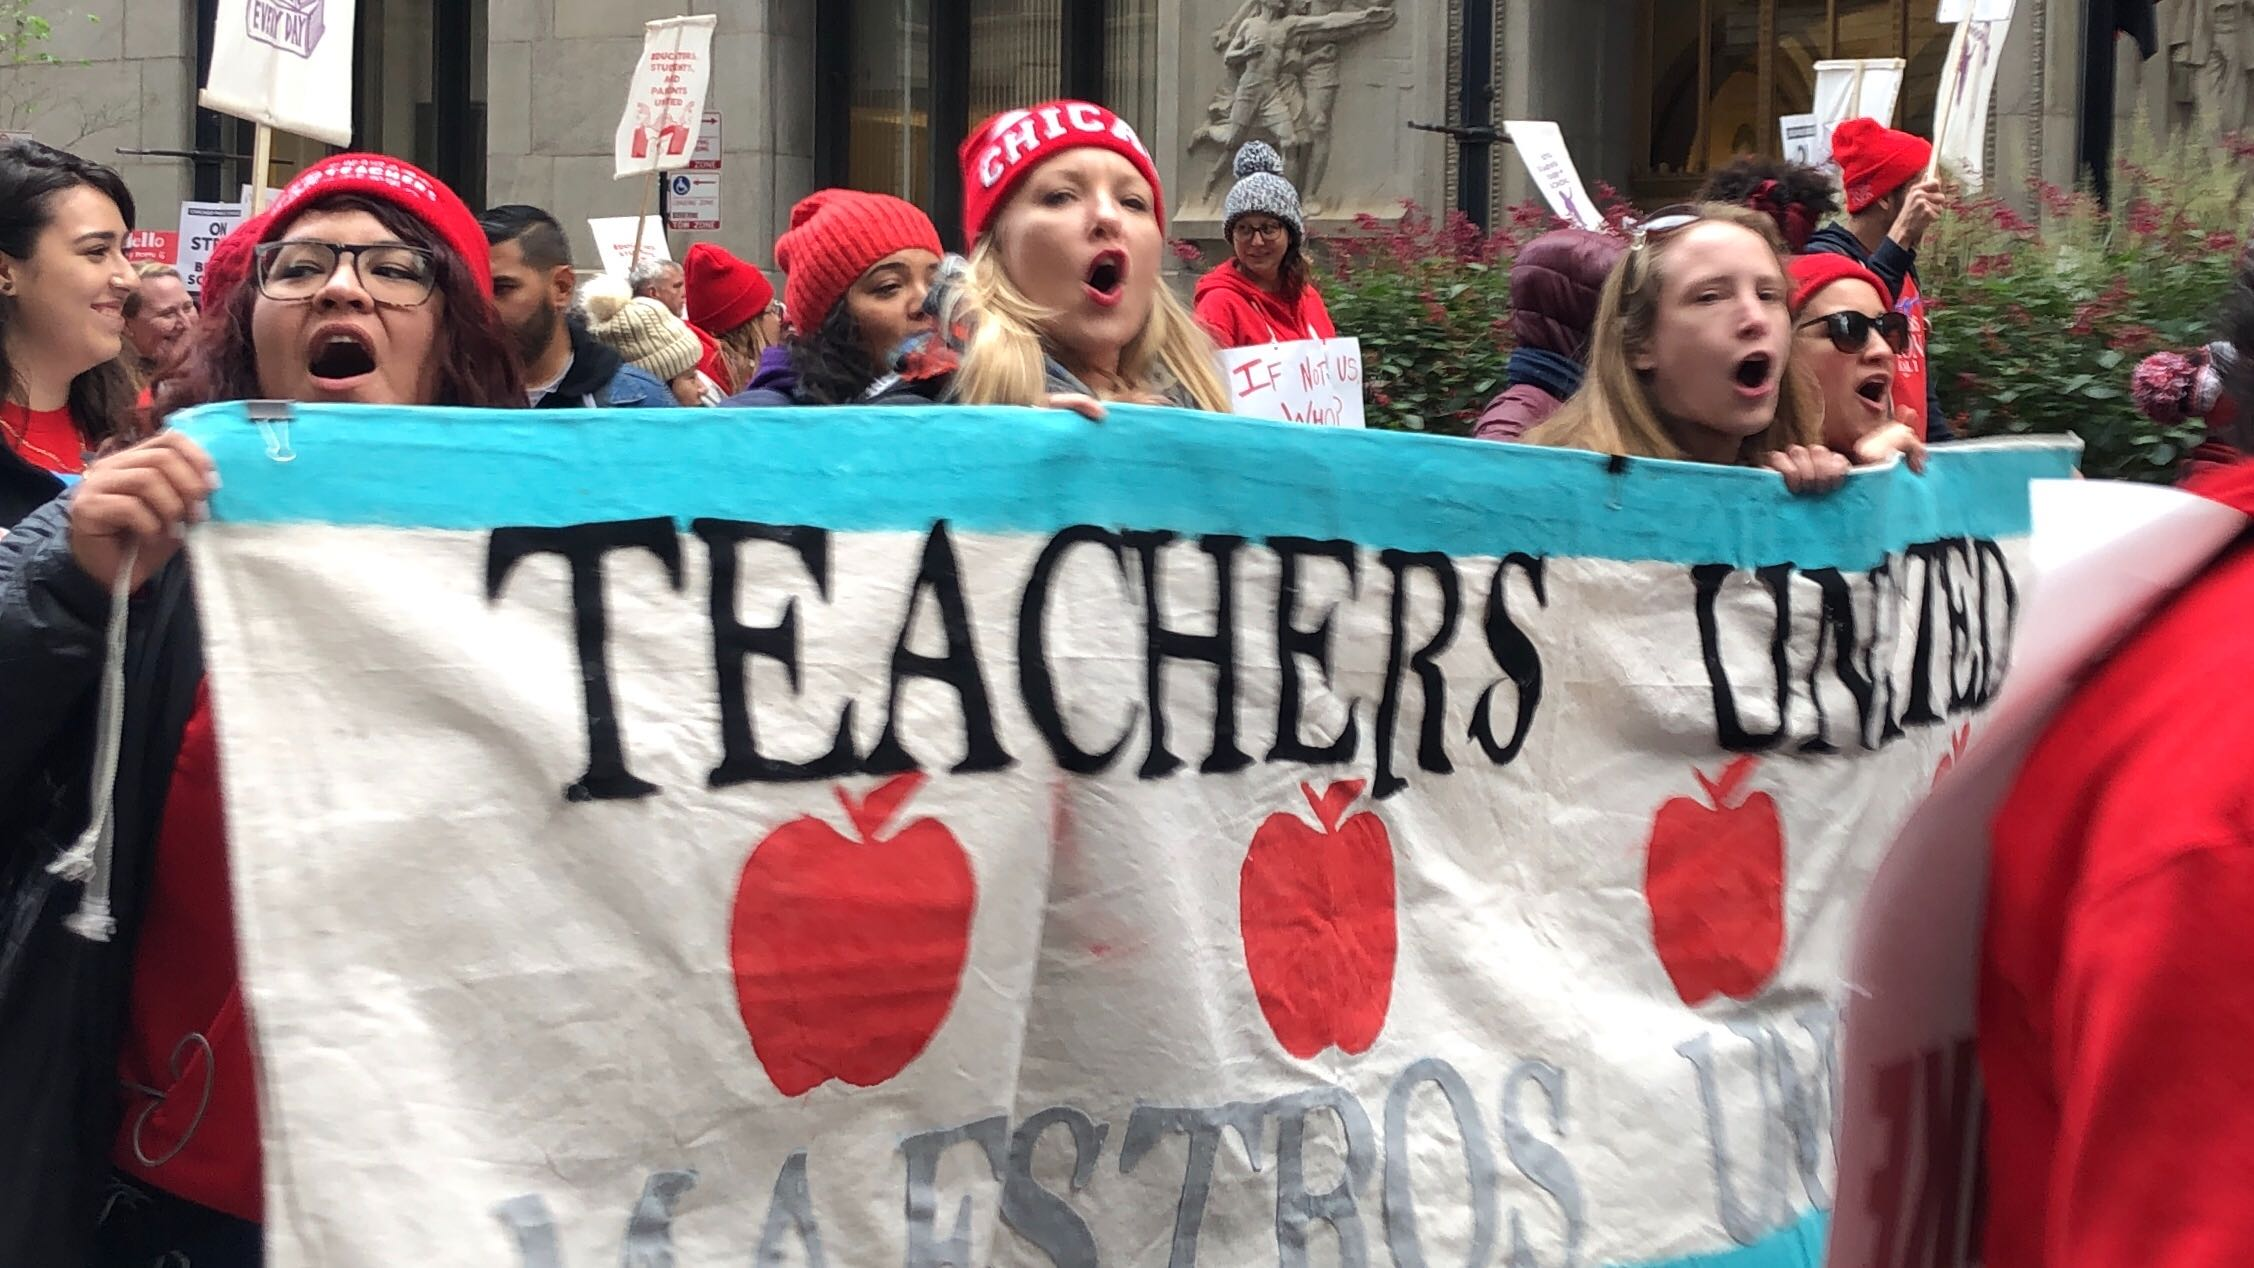 Chicago teachers rallied downtown on Oct. 18 on the second day of a citywide strike of teachers and support staff.